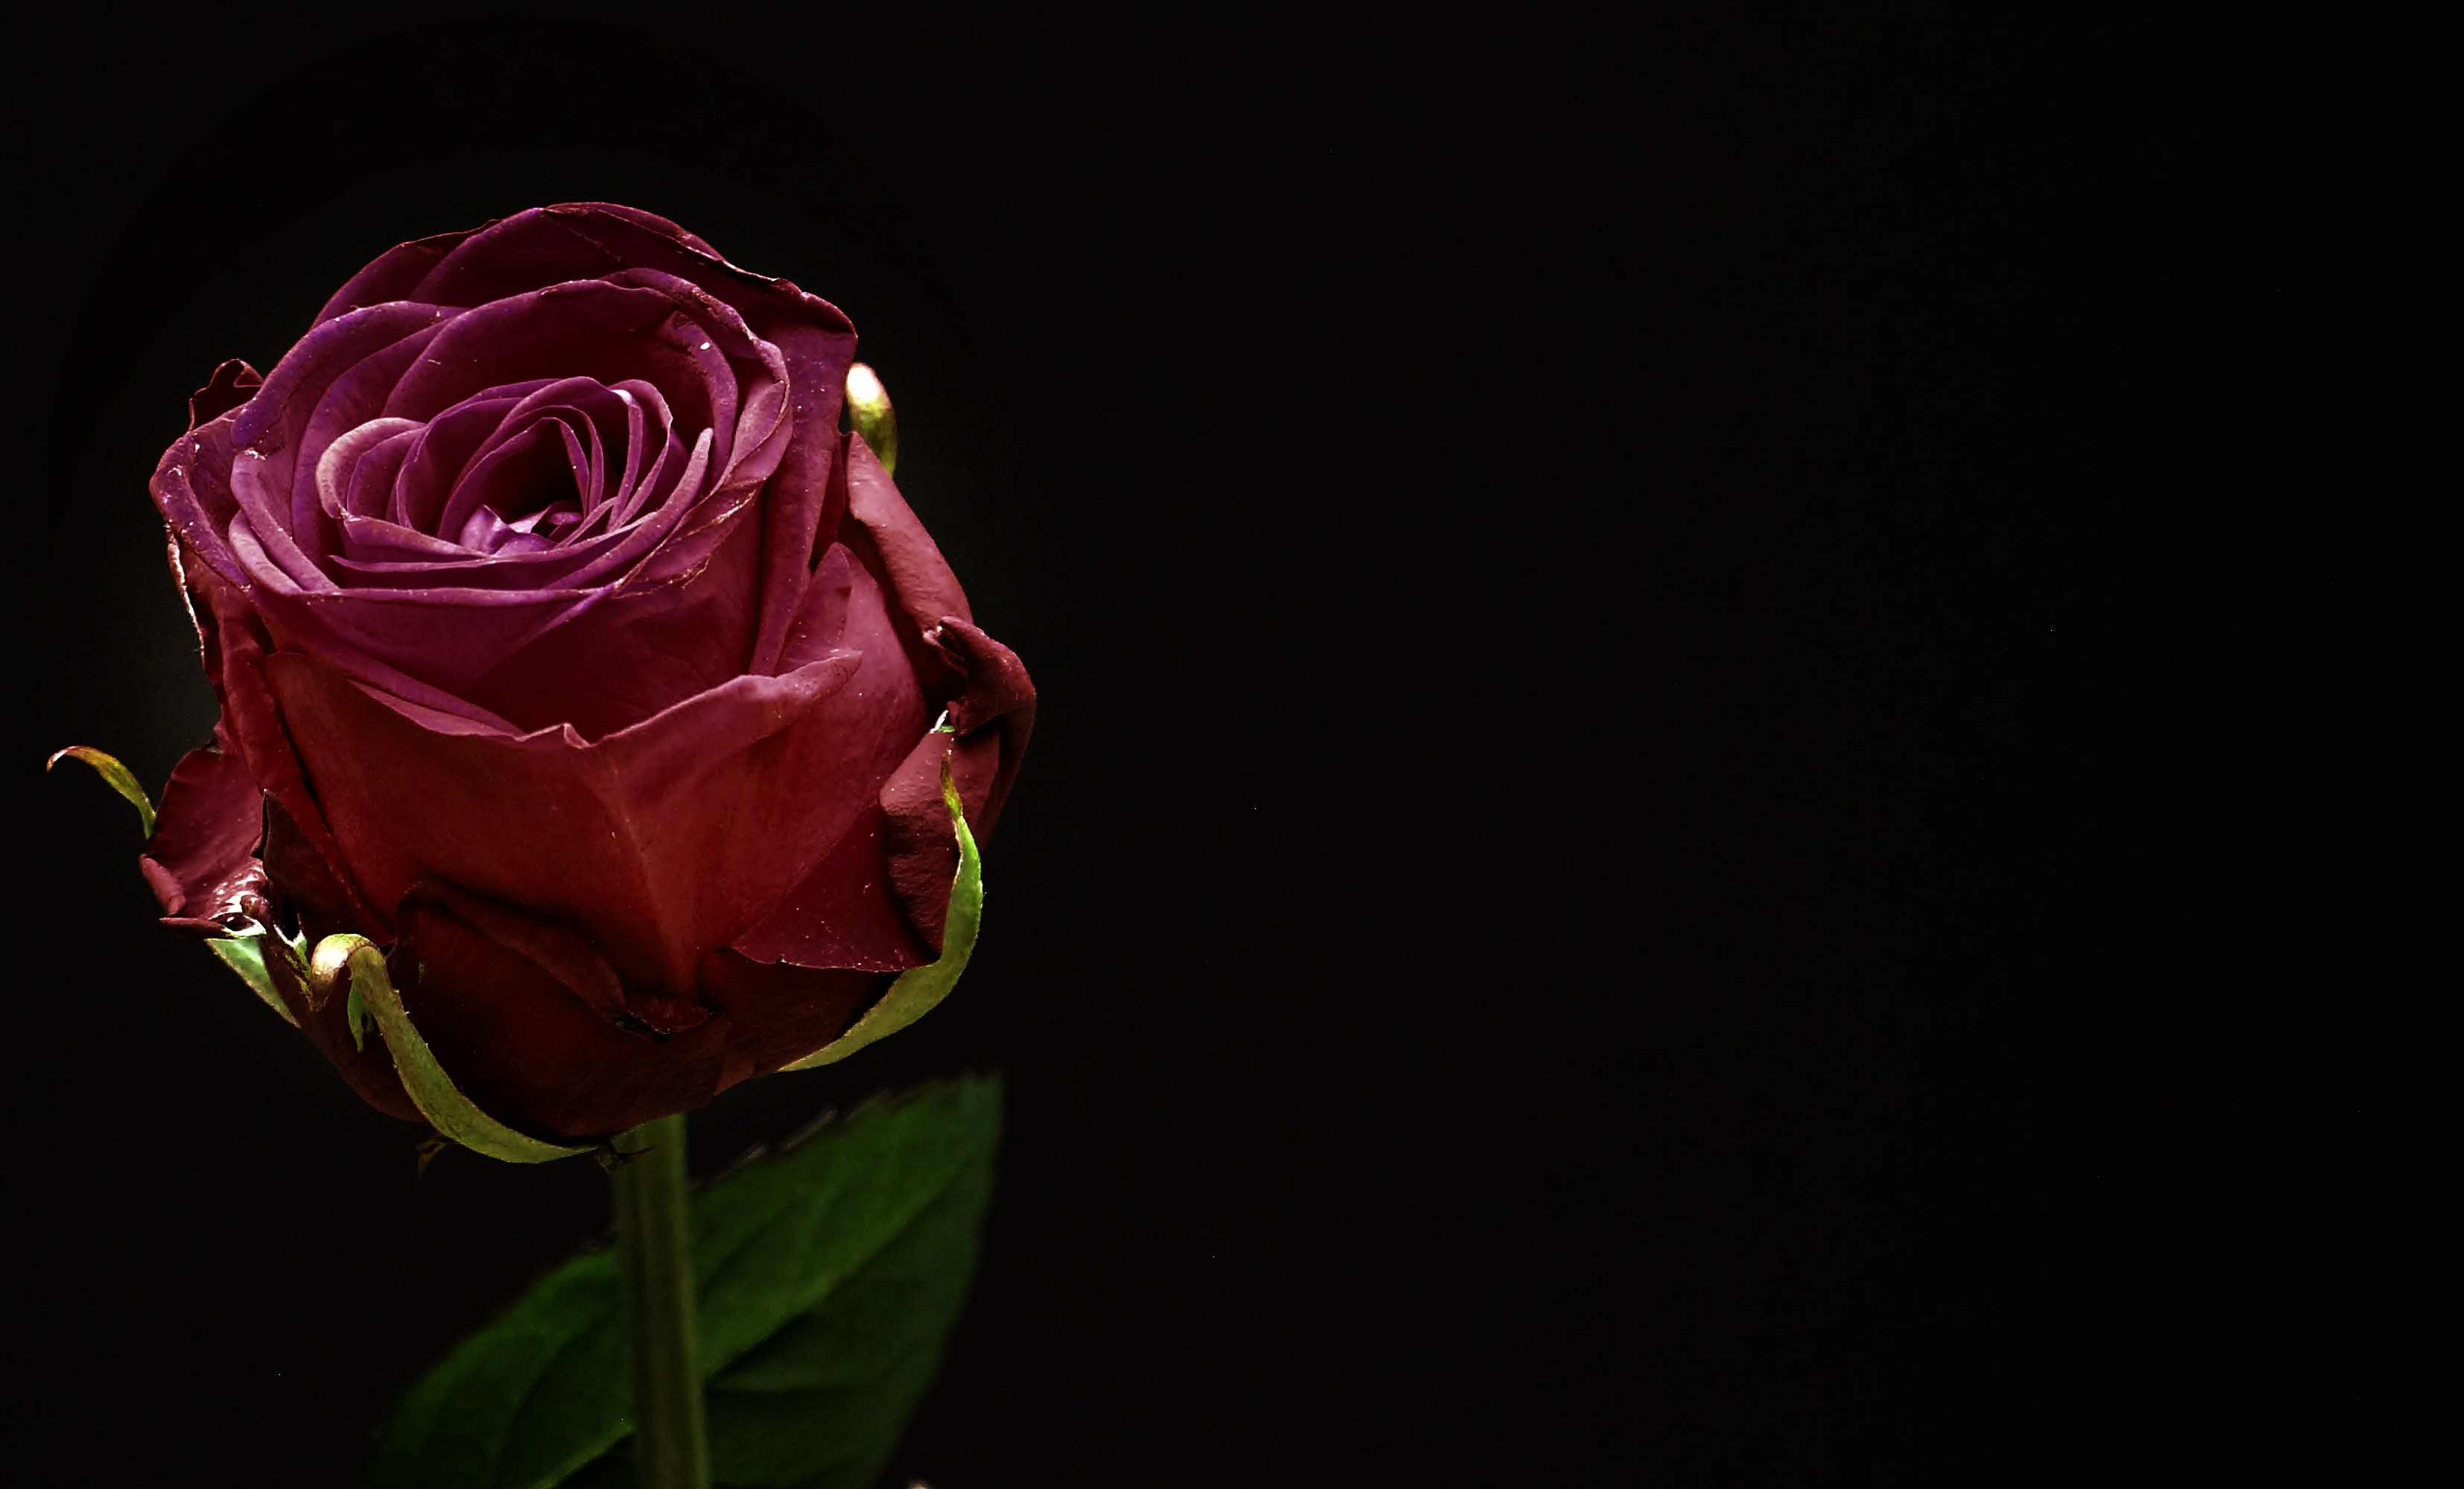 Red rose on black background wallpapertag - Black and red rose wallpaper ...